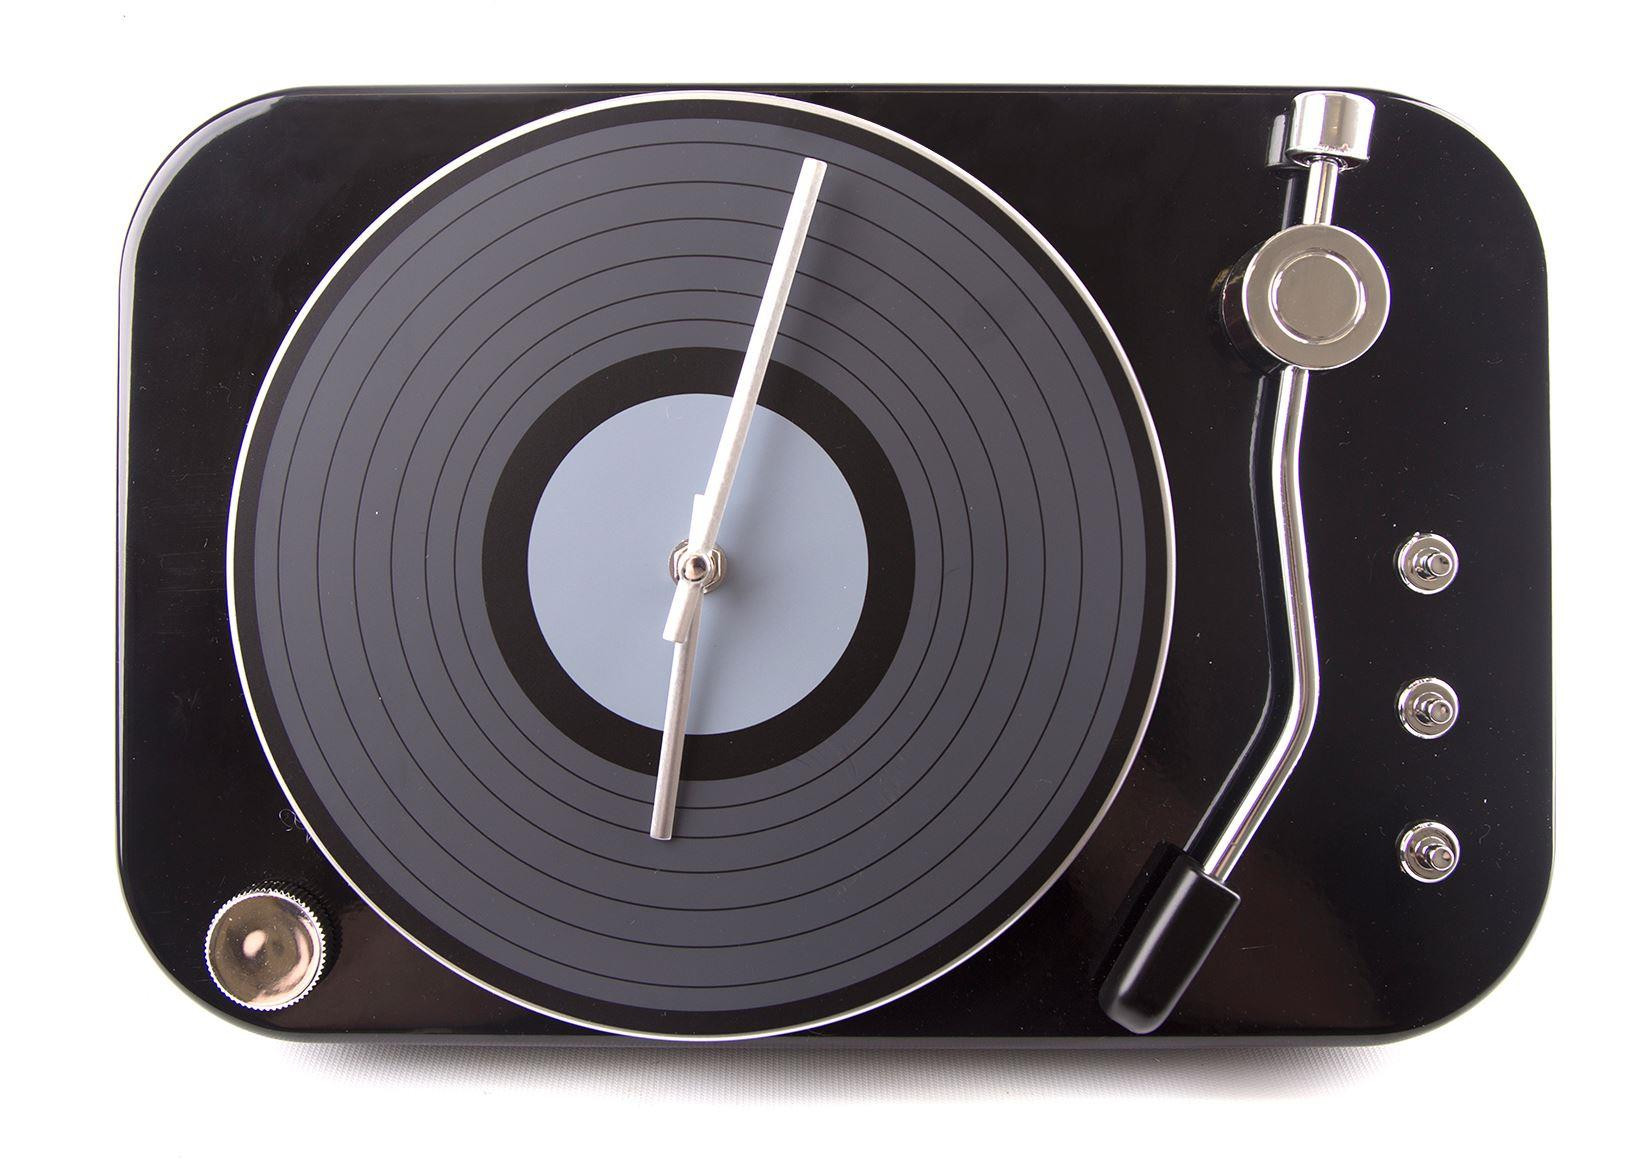 Vintage Retro Metal Turntable Vinyl Record Player Wall